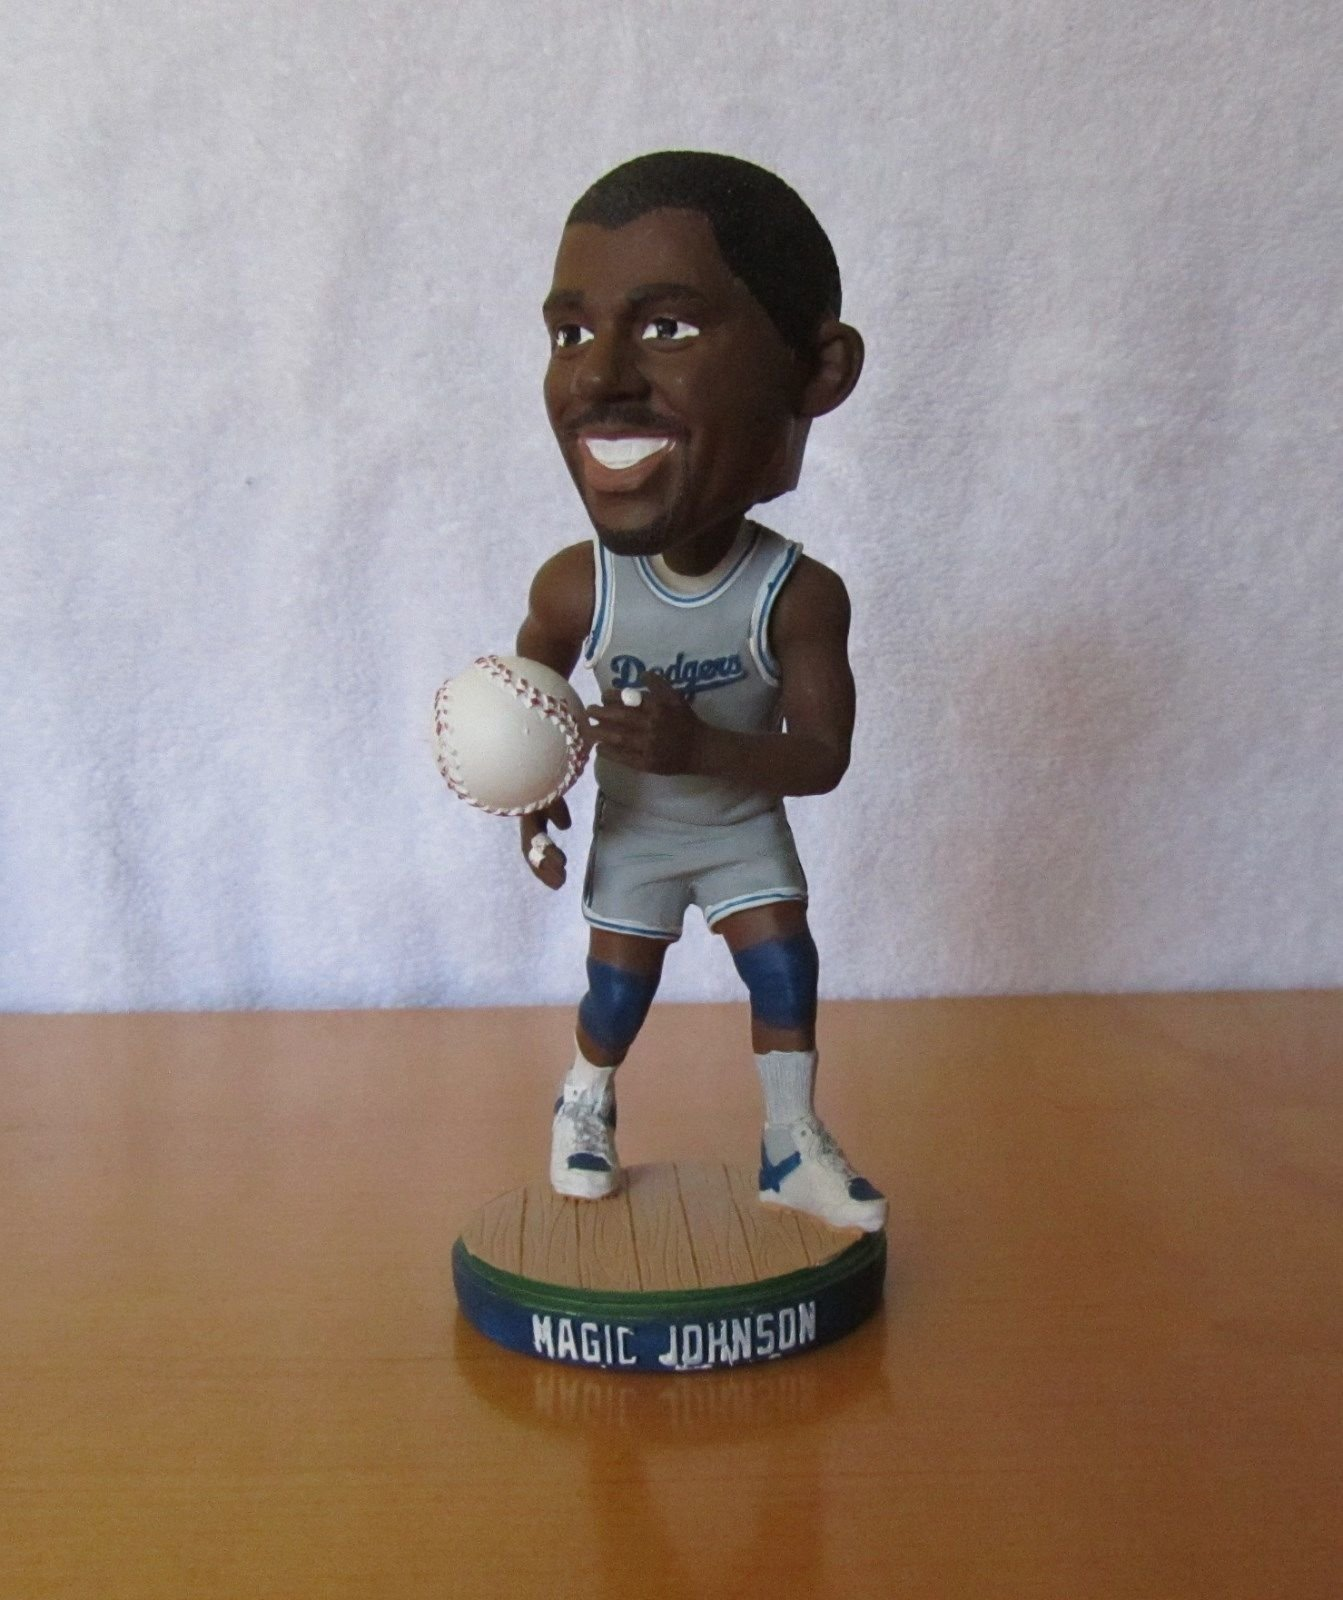 Magic Johnson 2014 Los Angeles Dodgers STADIUM PROMO Bobblehead SGA